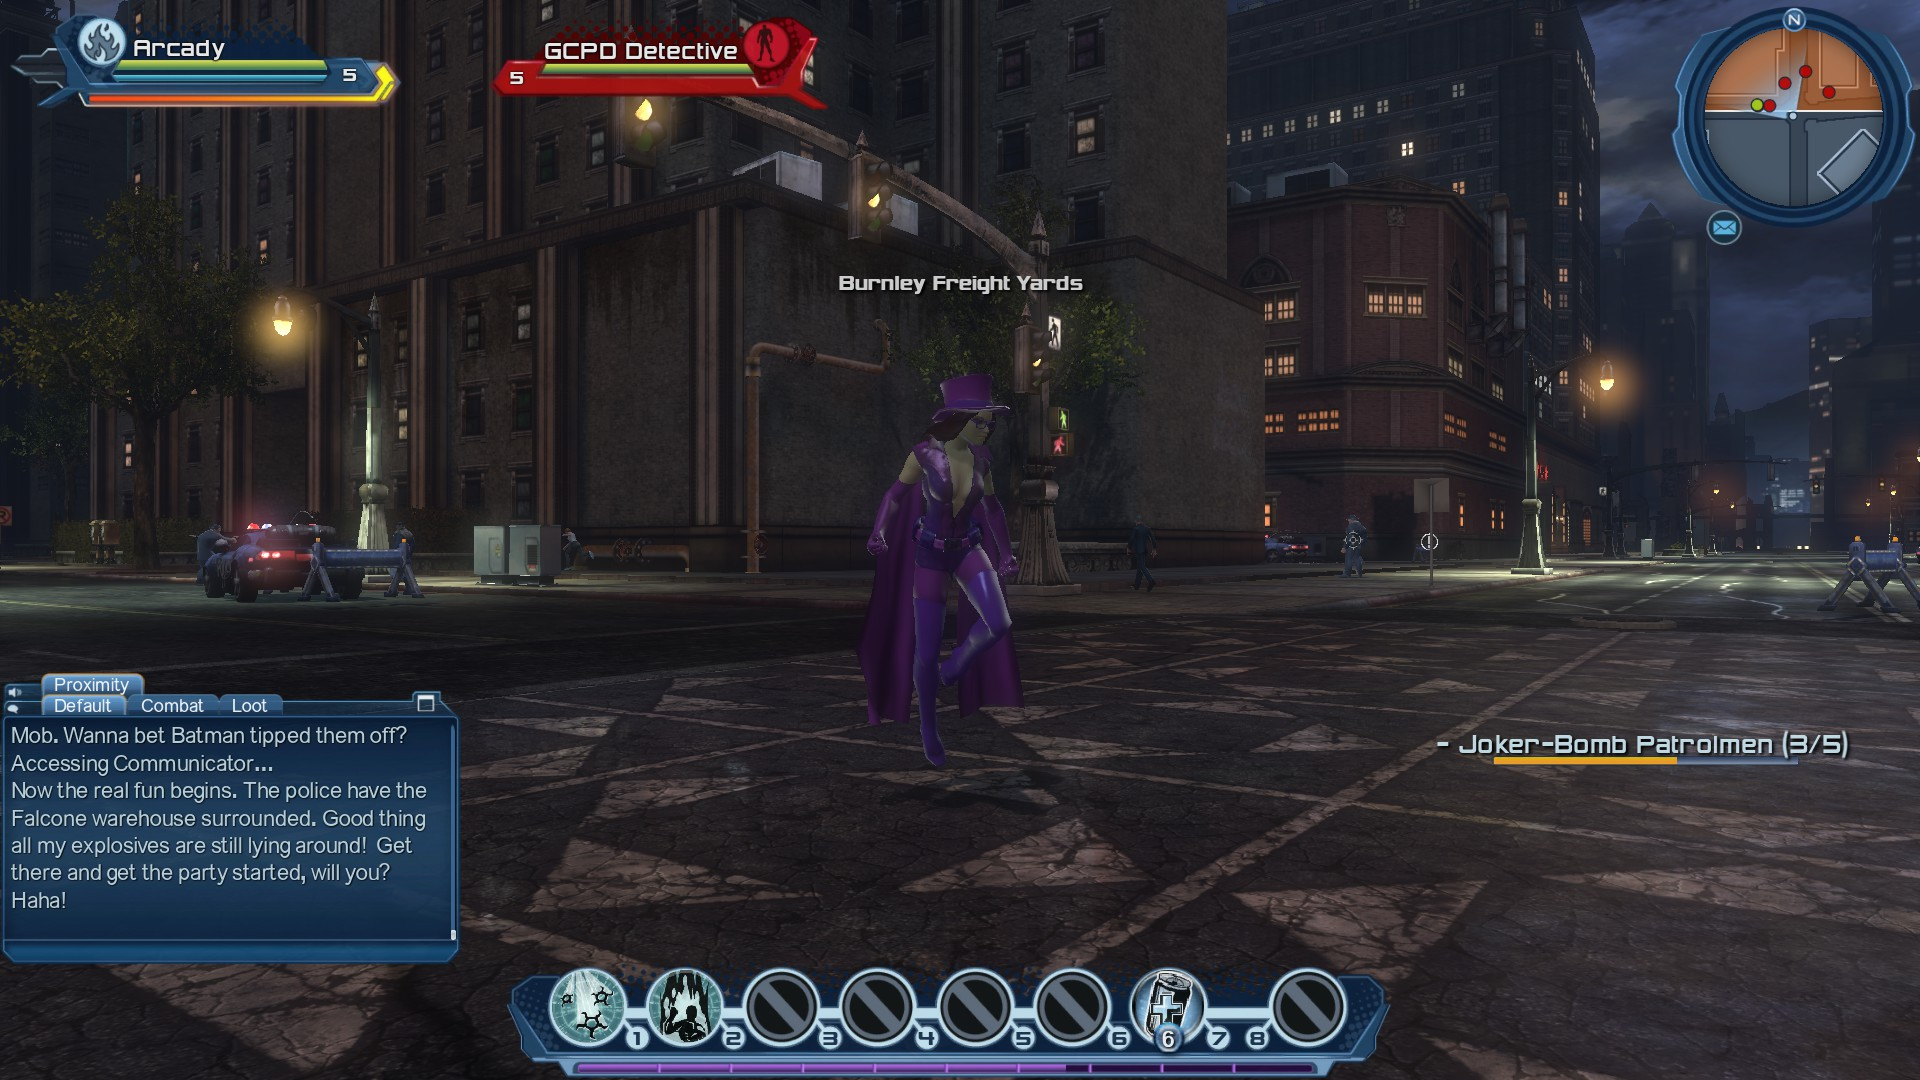 DC Universe Online - A Very Quick Look - May Contain Spoilers